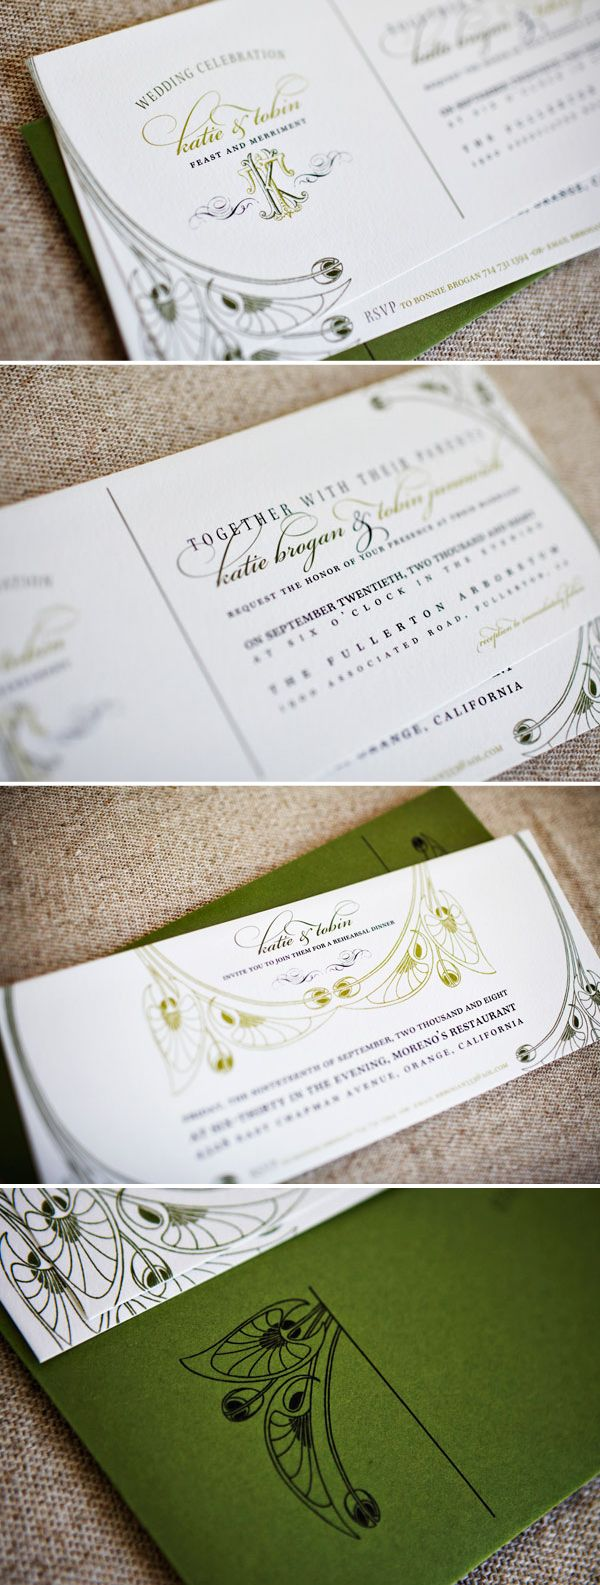 90 Best Invitation Ideas Images On Pinterest Invitation Ideas